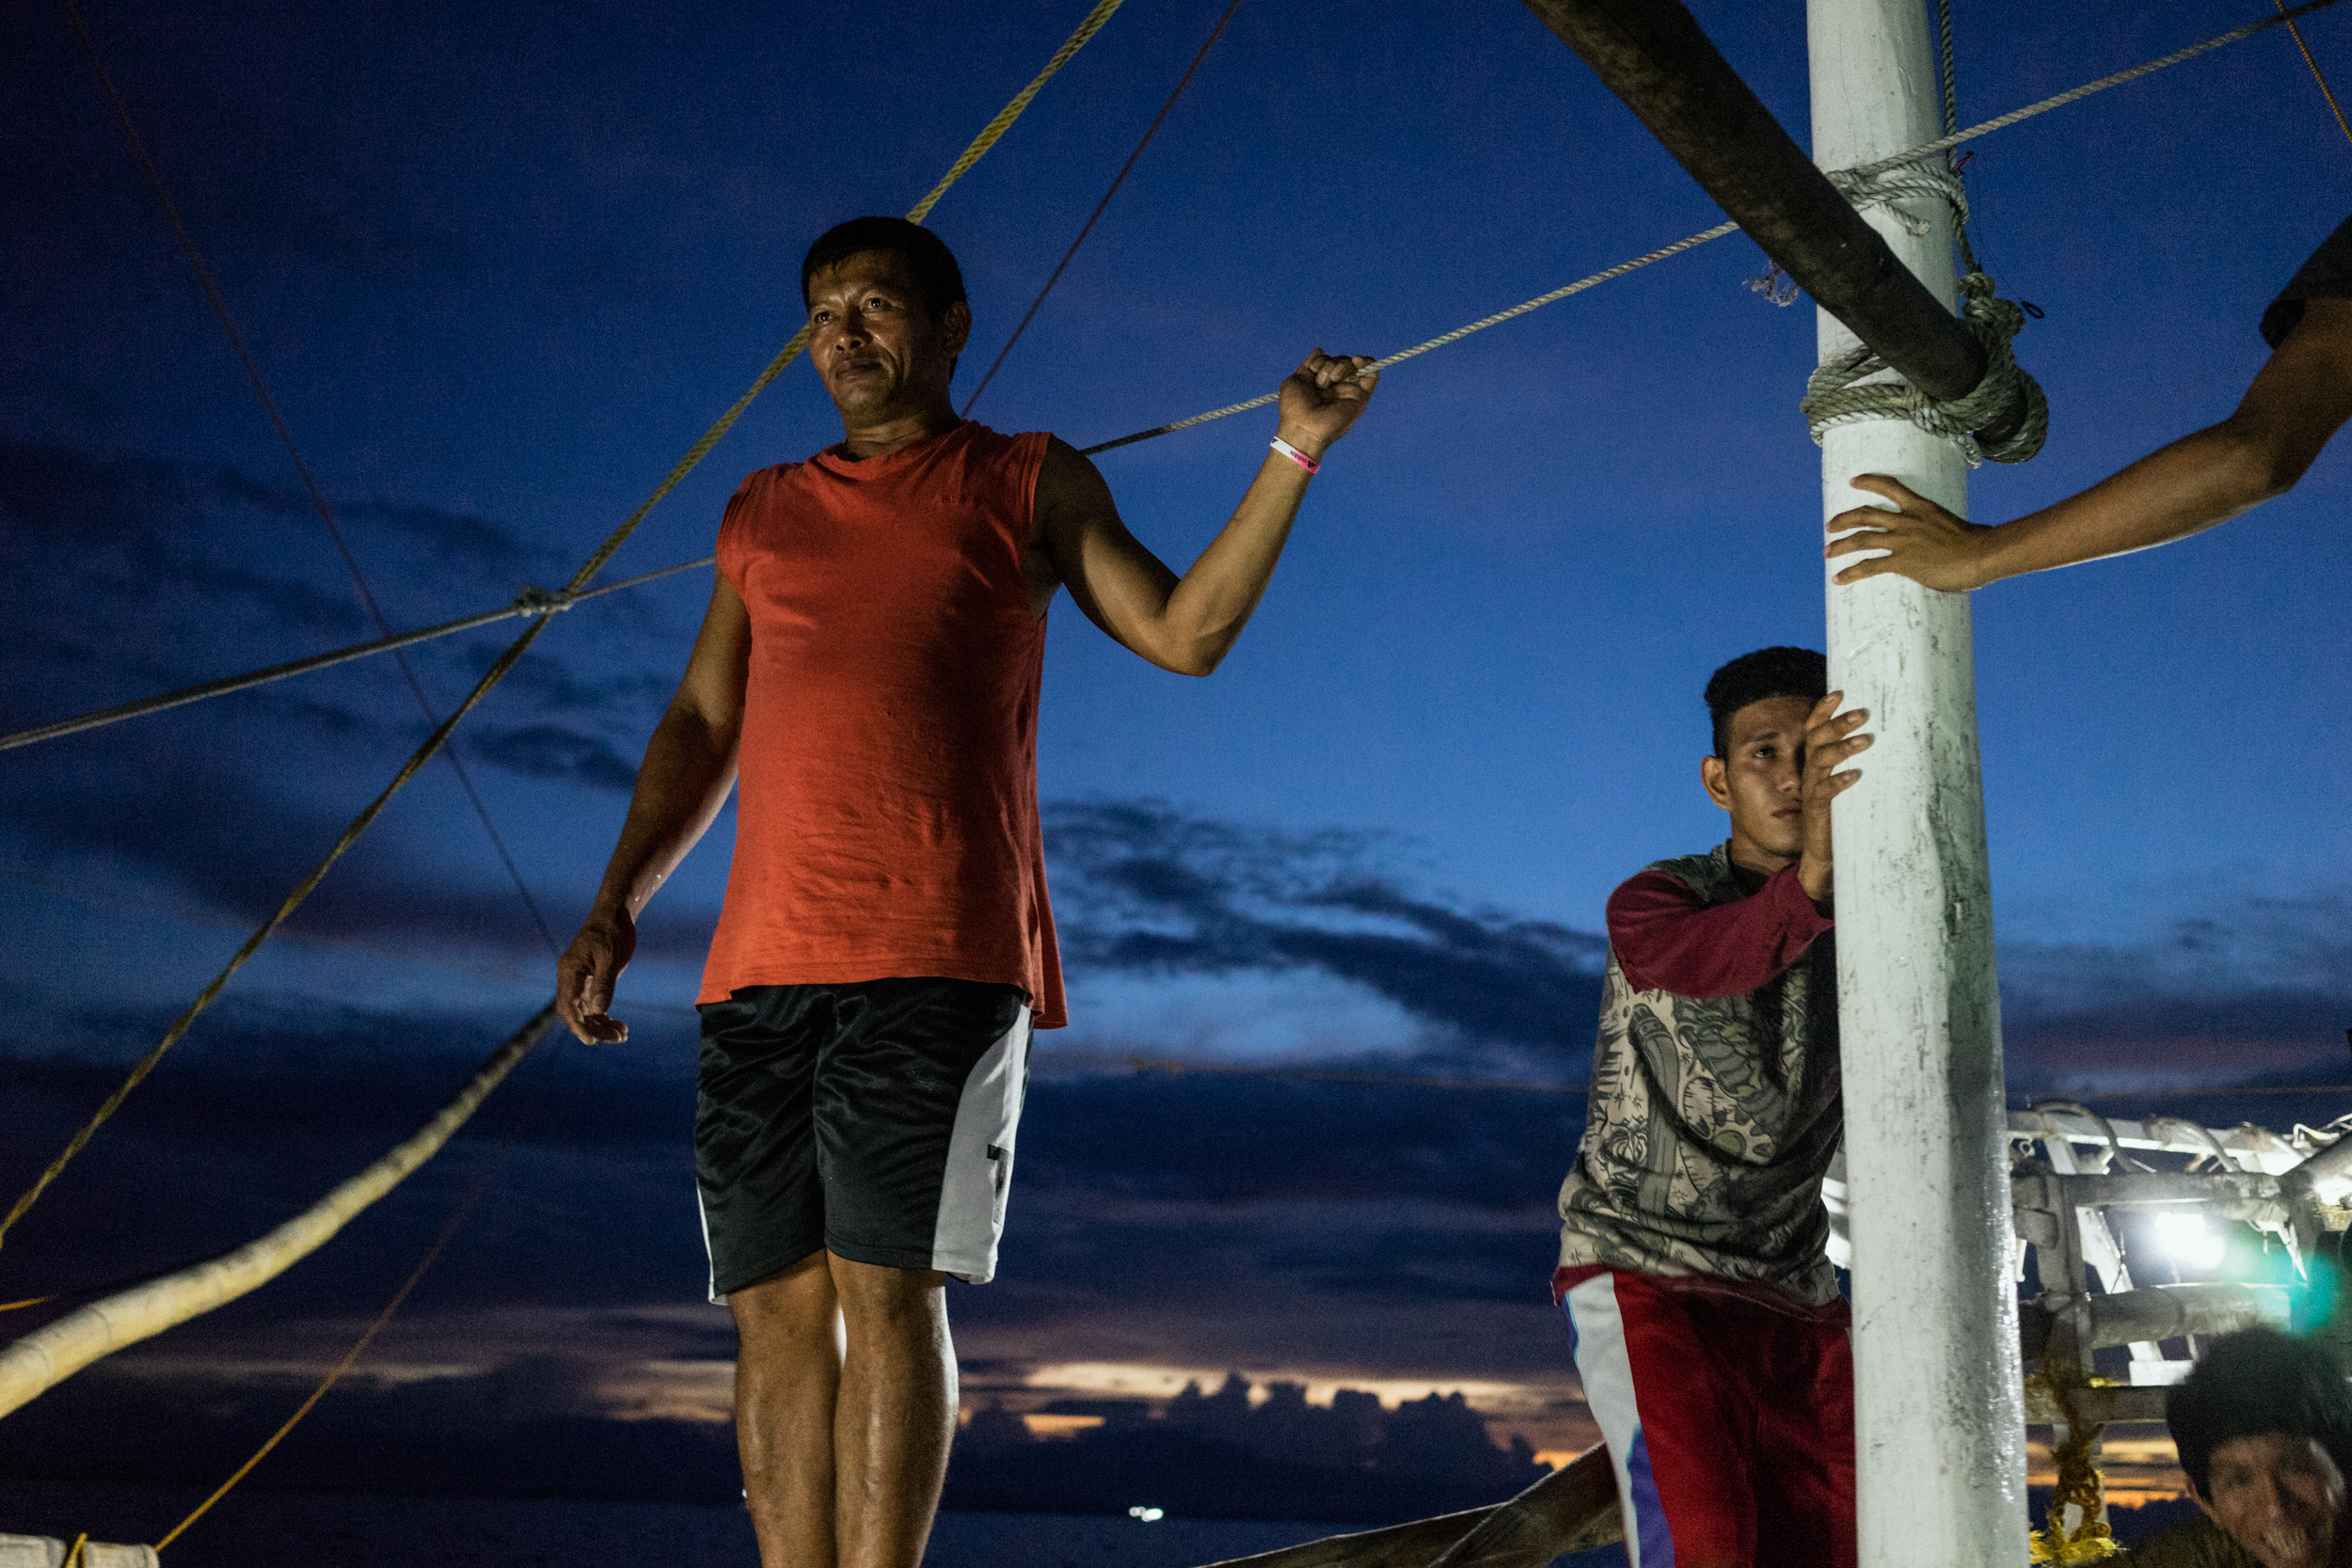 Kalibo, Philippines - September 21, 2015: The captain of a local fishing boat is seen at work. Members of the crew, who make approximately 35 USD per month, have expressed their desire to work on a larger fishing vessel for the promise of a higher income despite stories of fellow fishermen about the forms of abuse that happen on such vessels. Hannah Reyes